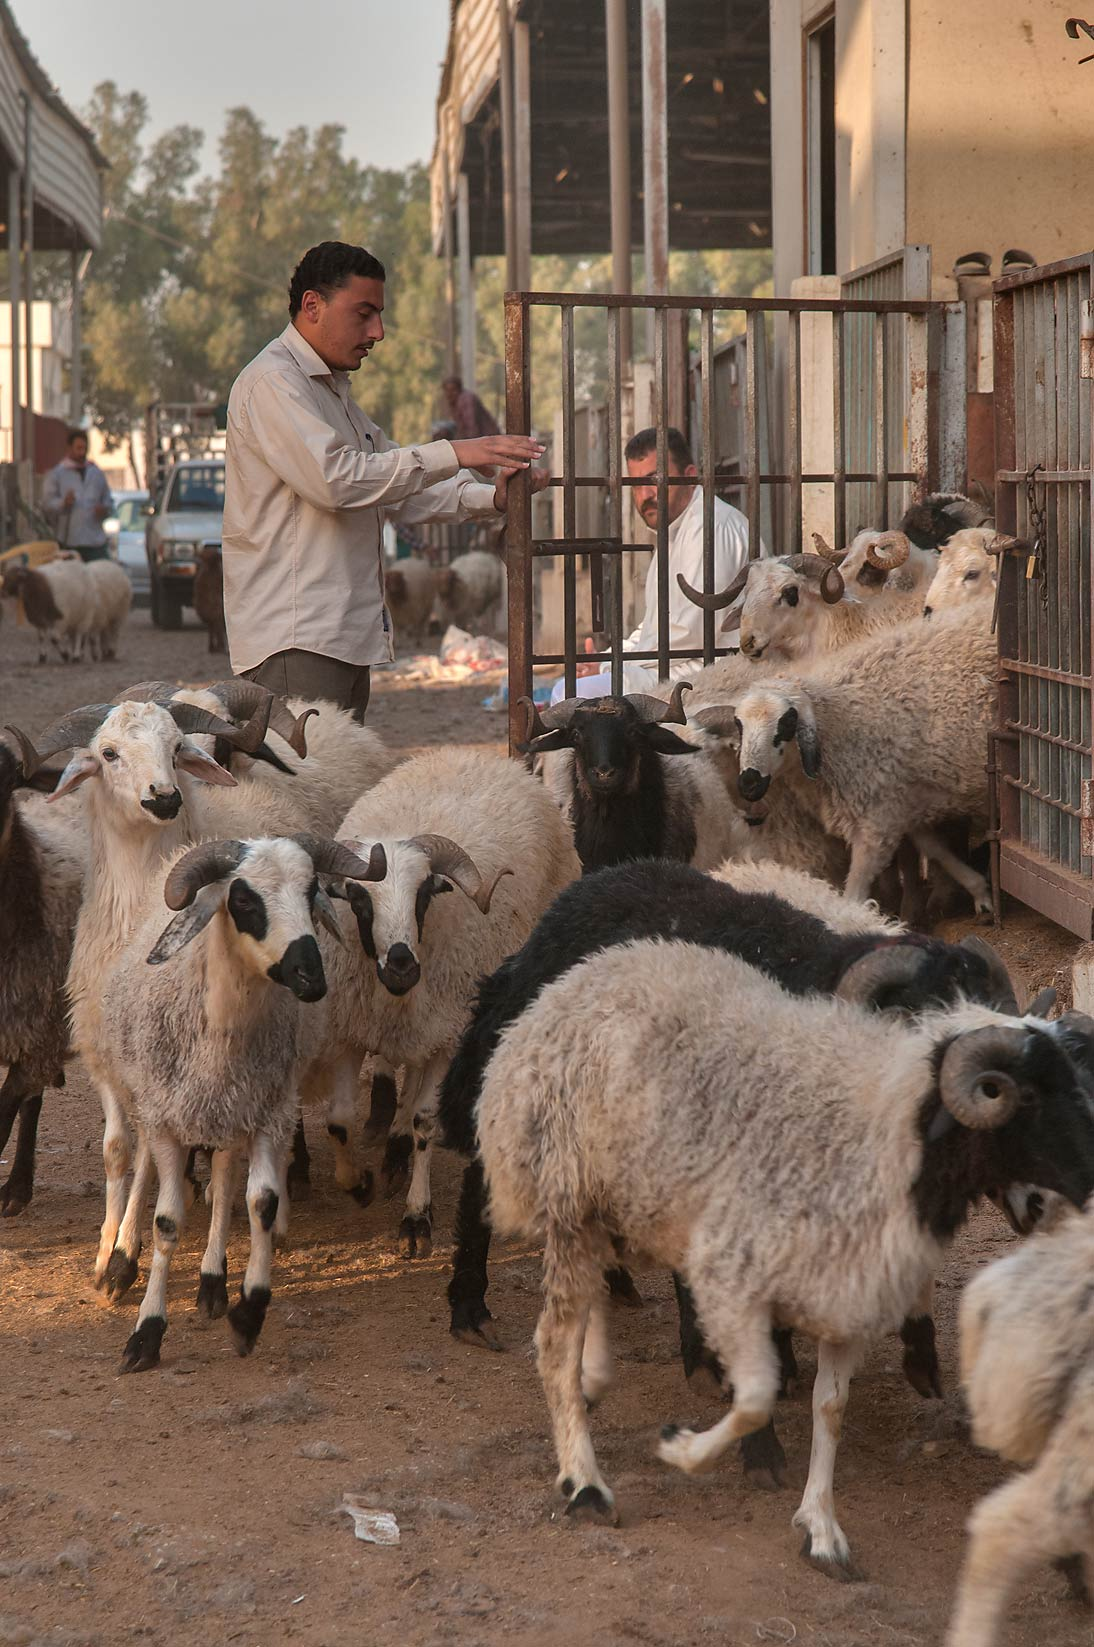 Counting sheep in Livestock Market, Wholesale Markets area. Doha, Qatar